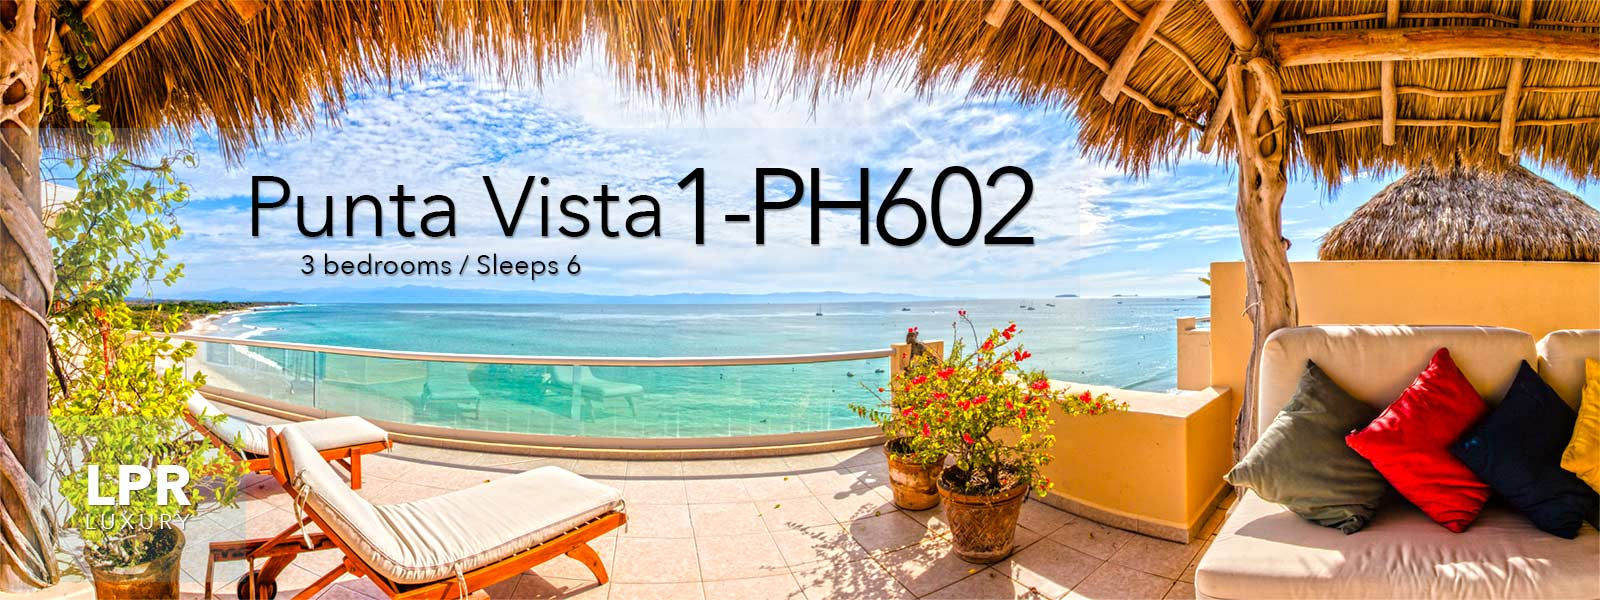 Punta Vista 1 - Penthouse 602 - Playa Punta de Mita Vacation Rental Condo for Sale